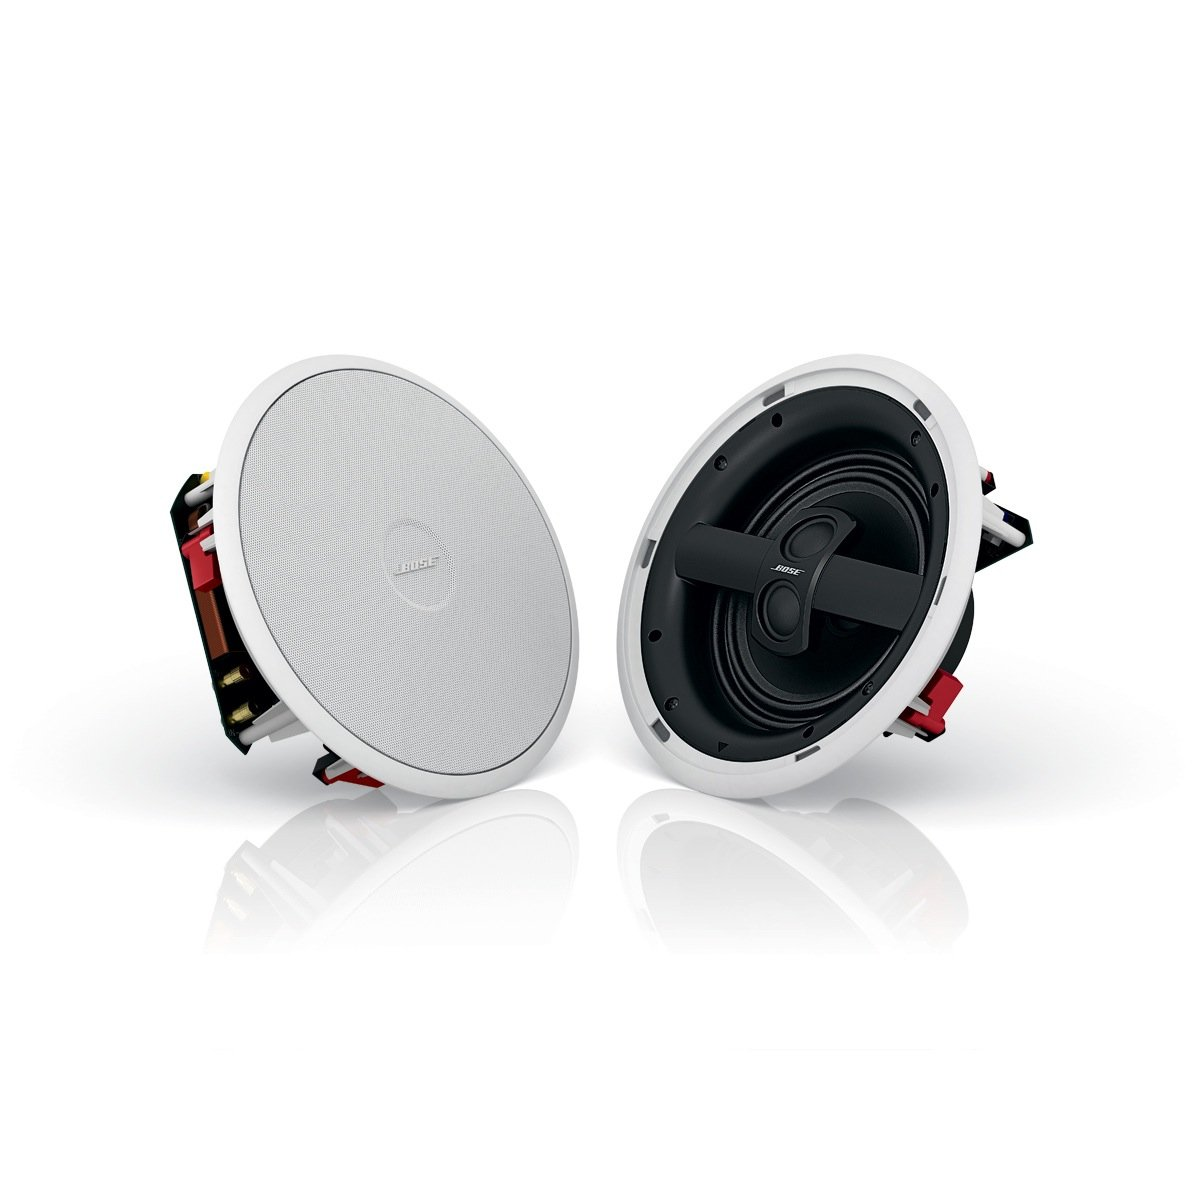 Bose Virtually Invisible 791 in-ceiling スピーカー [並行輸入品] B002Q0KHW8